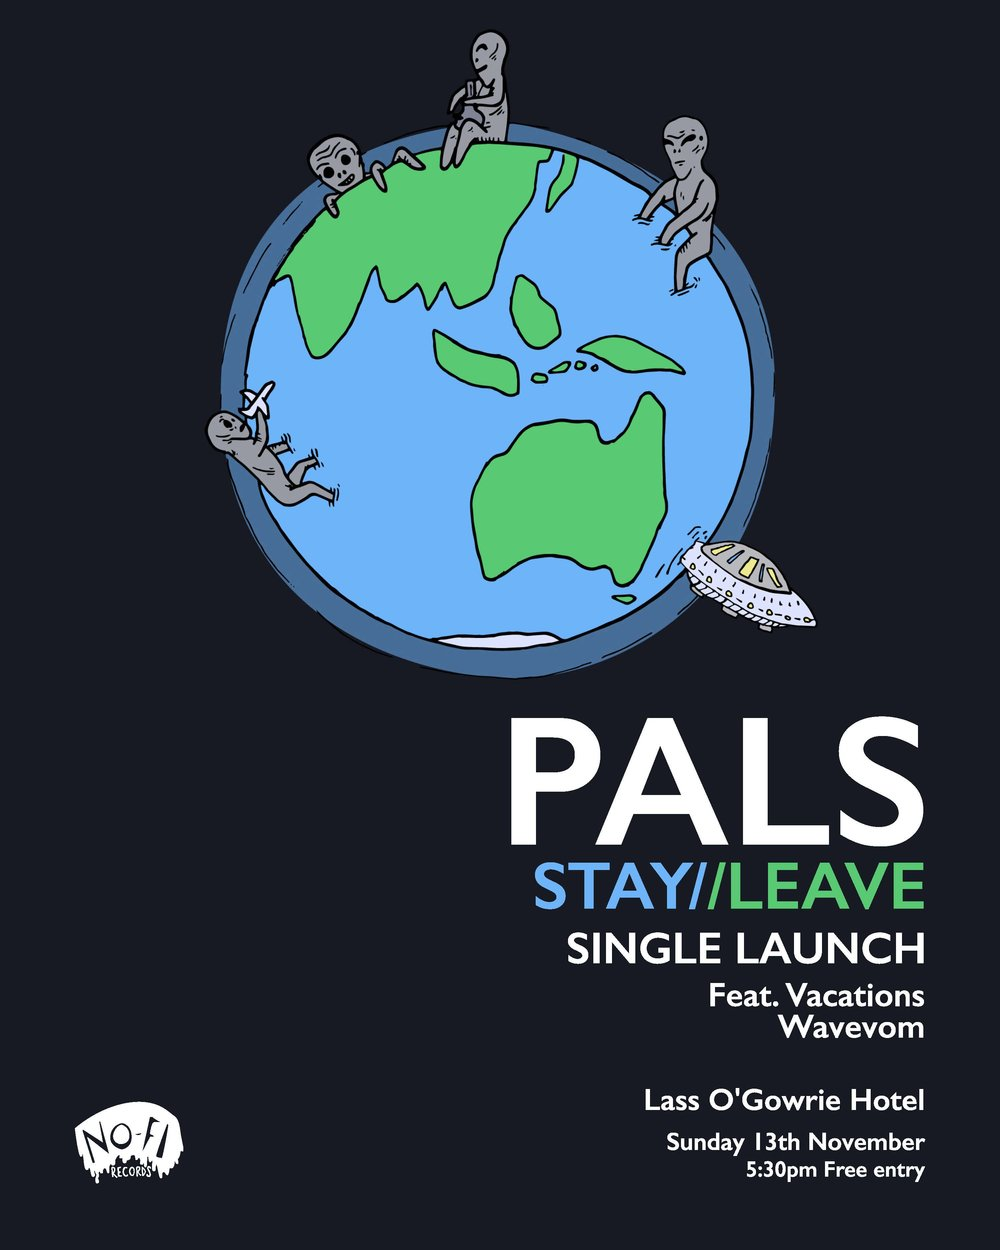 PALS STAY-LEAVE POSTER.jpg